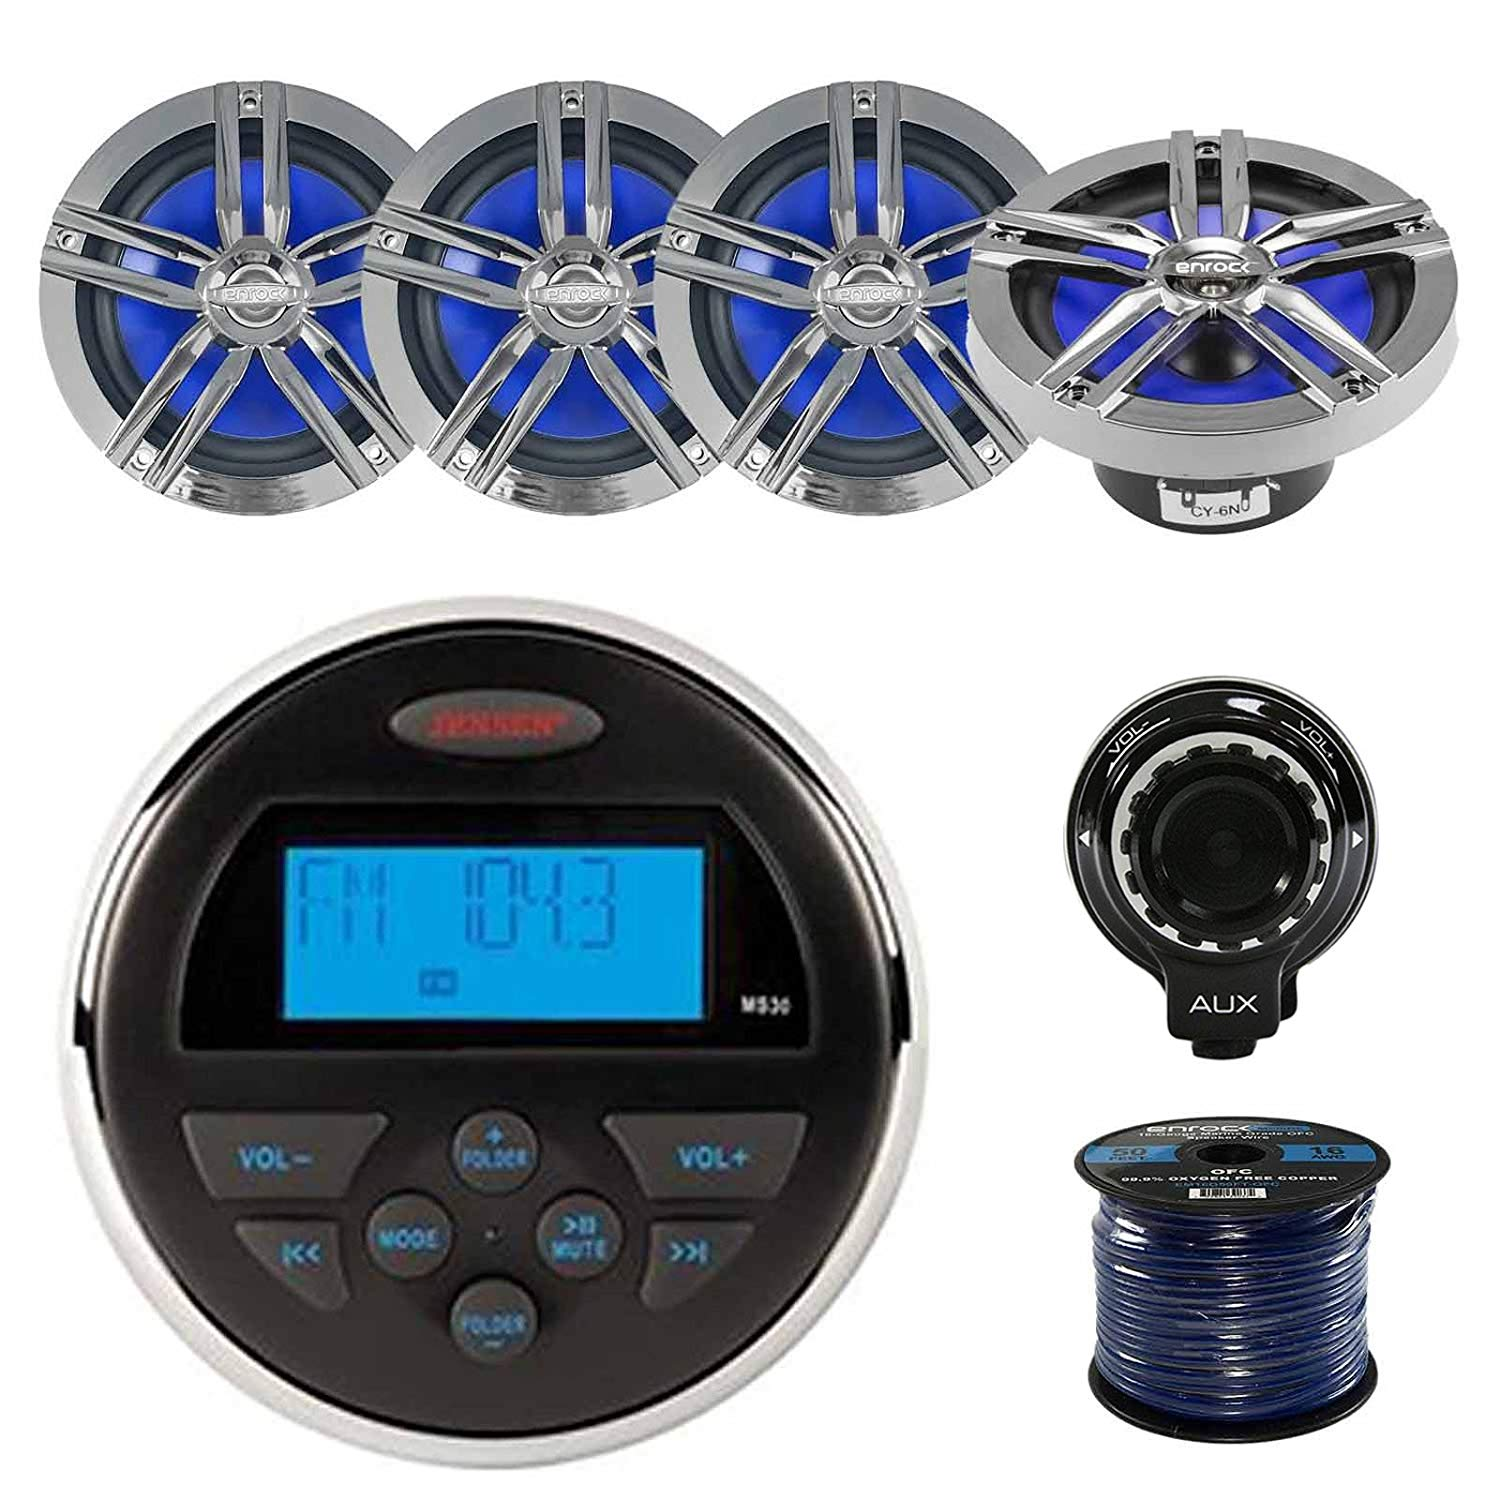 """JENSEN MS30 AM/FM/USB WP Marine Boat Stereo With Enrock Marine 2-Way 180W 6.5"""" Charcoal Speakers (2-Pairs), Enrock Marine Grade 50ft 16-G SPKR Wire & Hifonics Wired BT Preamp Controller"""